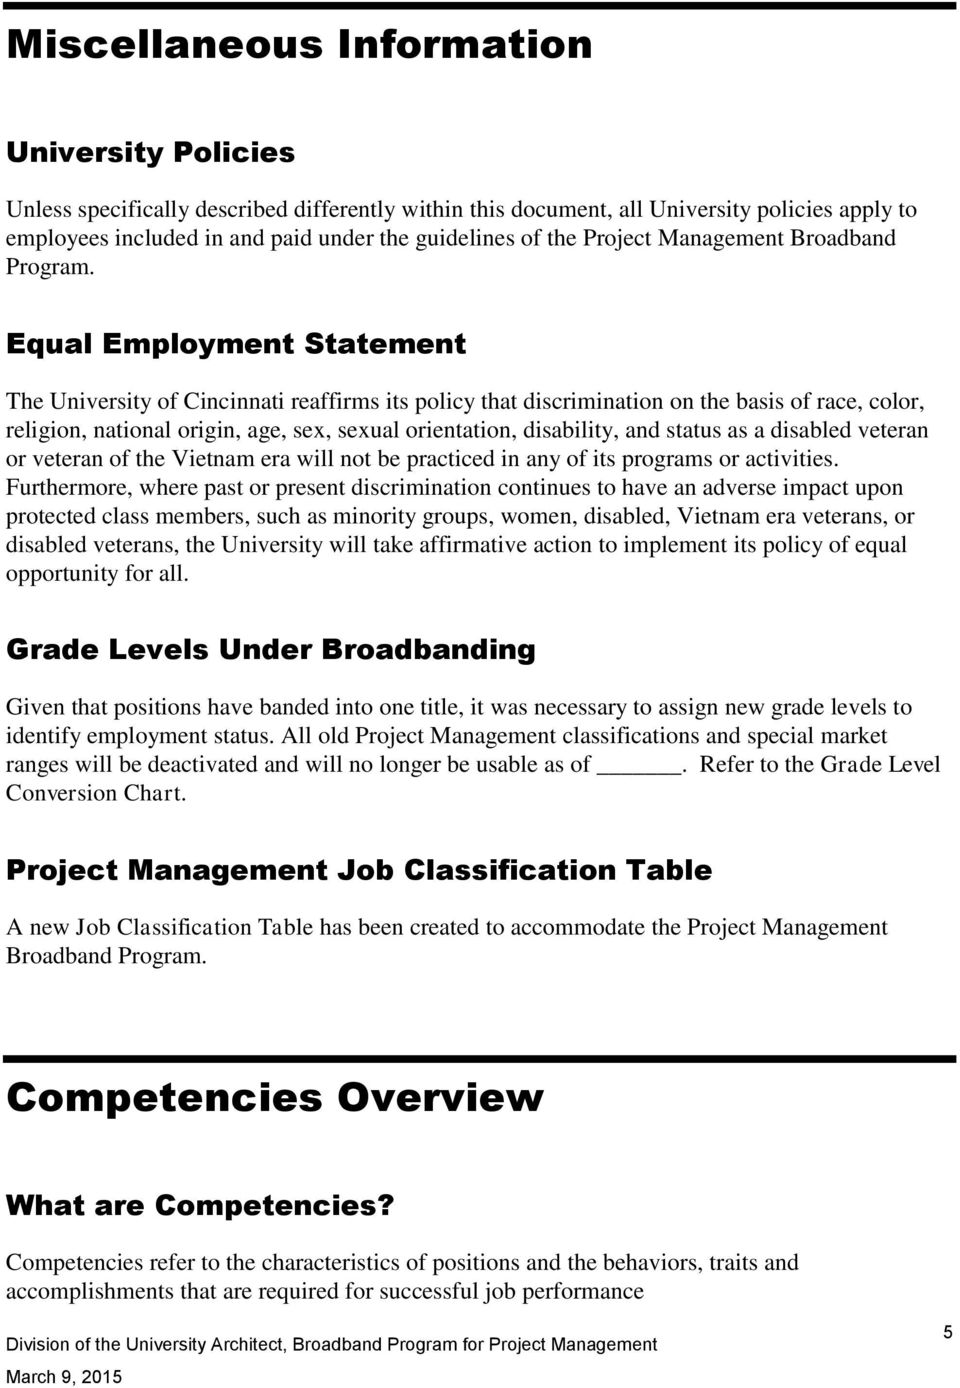 Equal Employment Statement The University of Cincinnati reaffirms its policy that discrimination on the basis of race, color, religion, national origin, age, sex, sexual orientation, disability, and